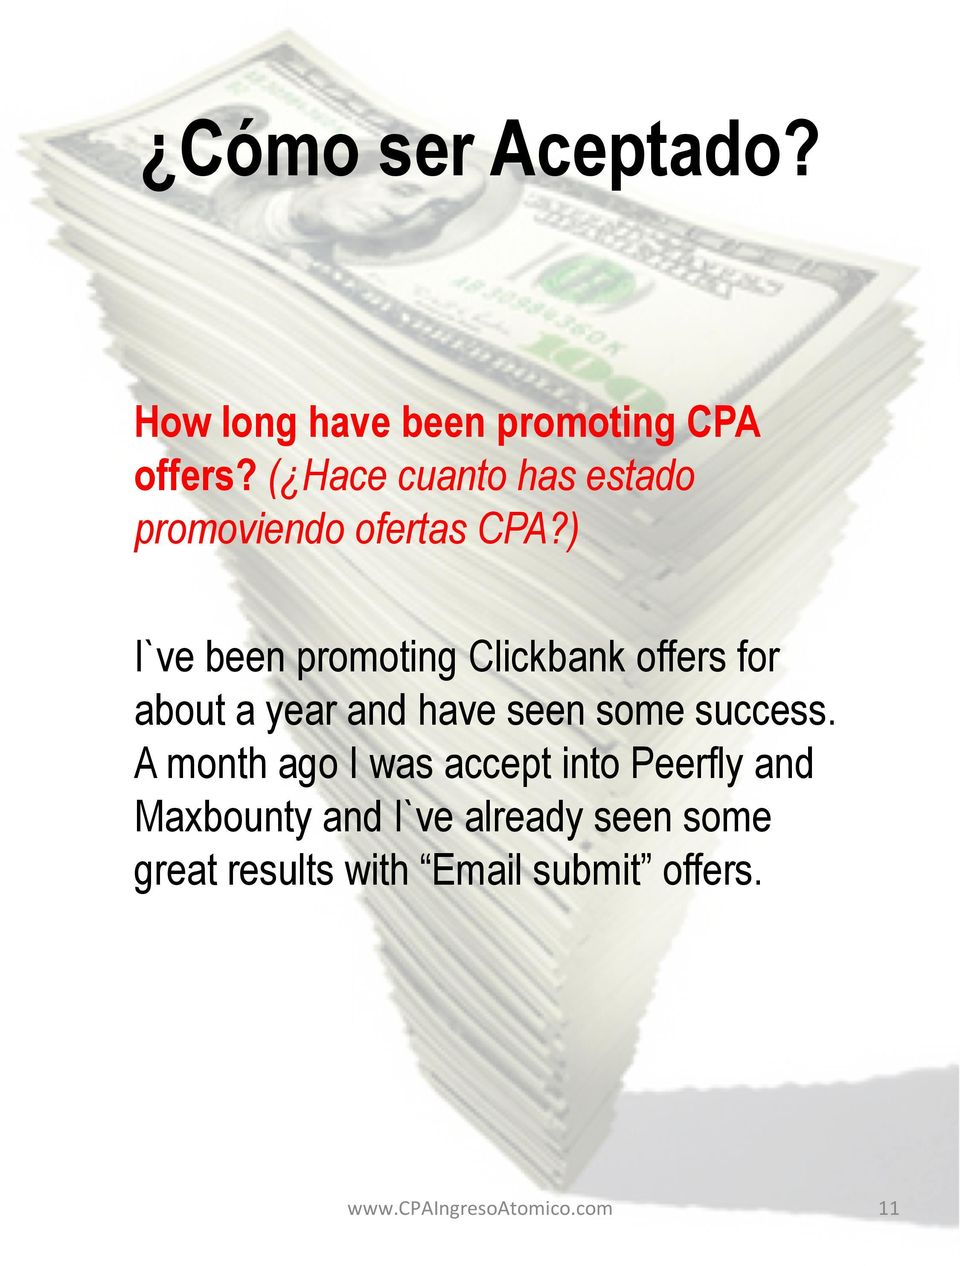 ) I`ve been promoting Clickbank offers for about a year and have seen